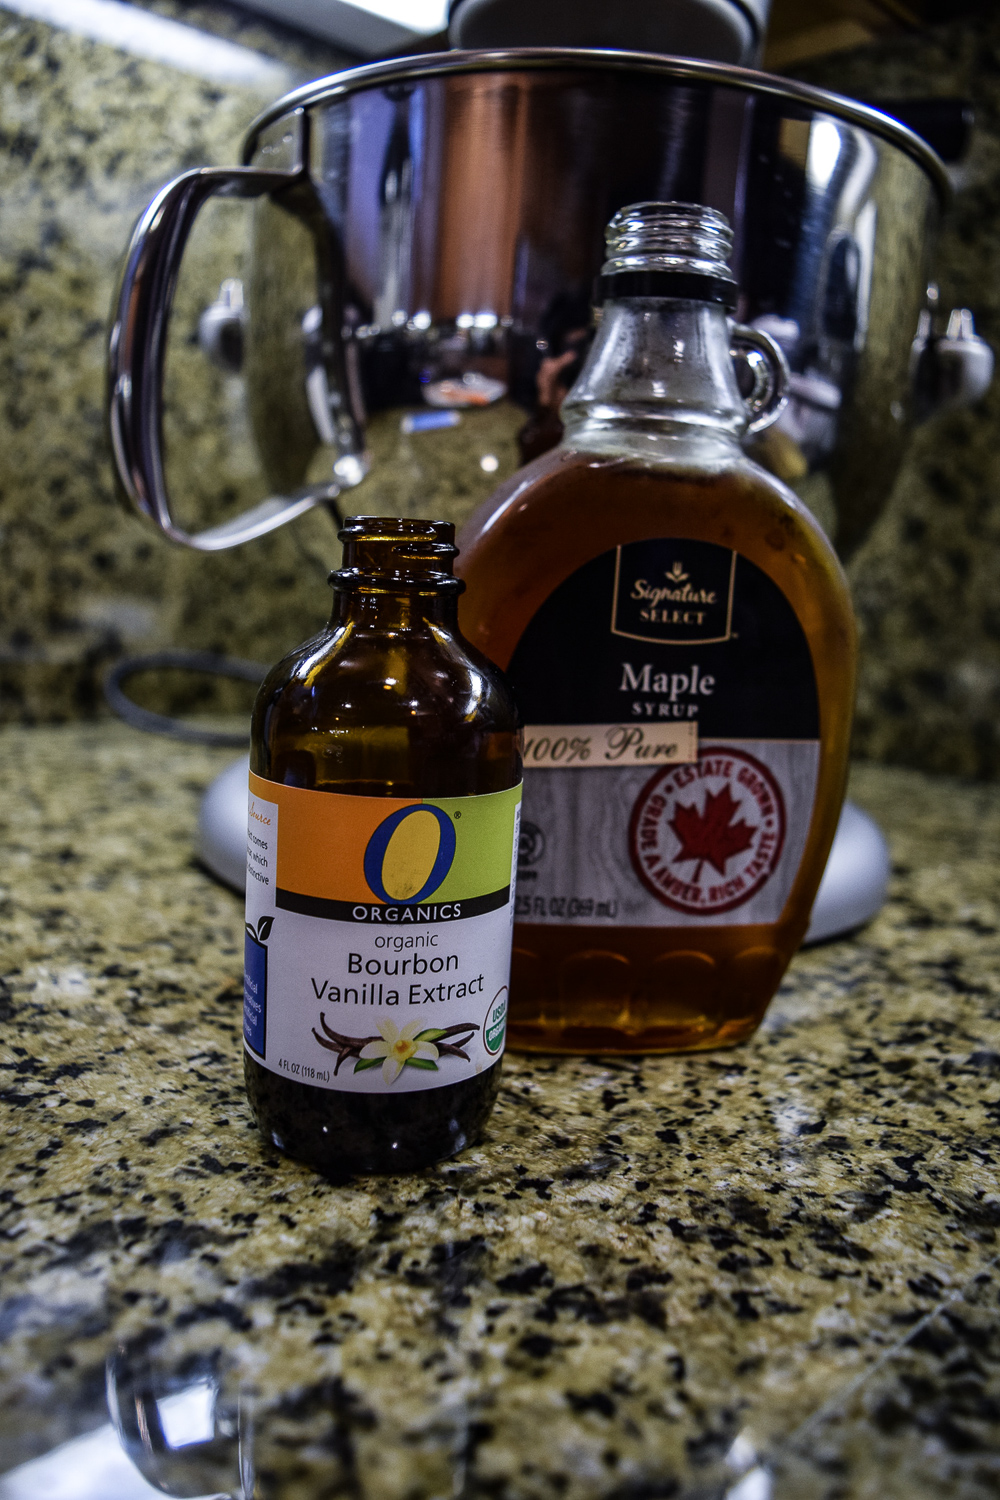 Vanilla extract and maple syrup to add to the peanut butter and brown sugar mixture